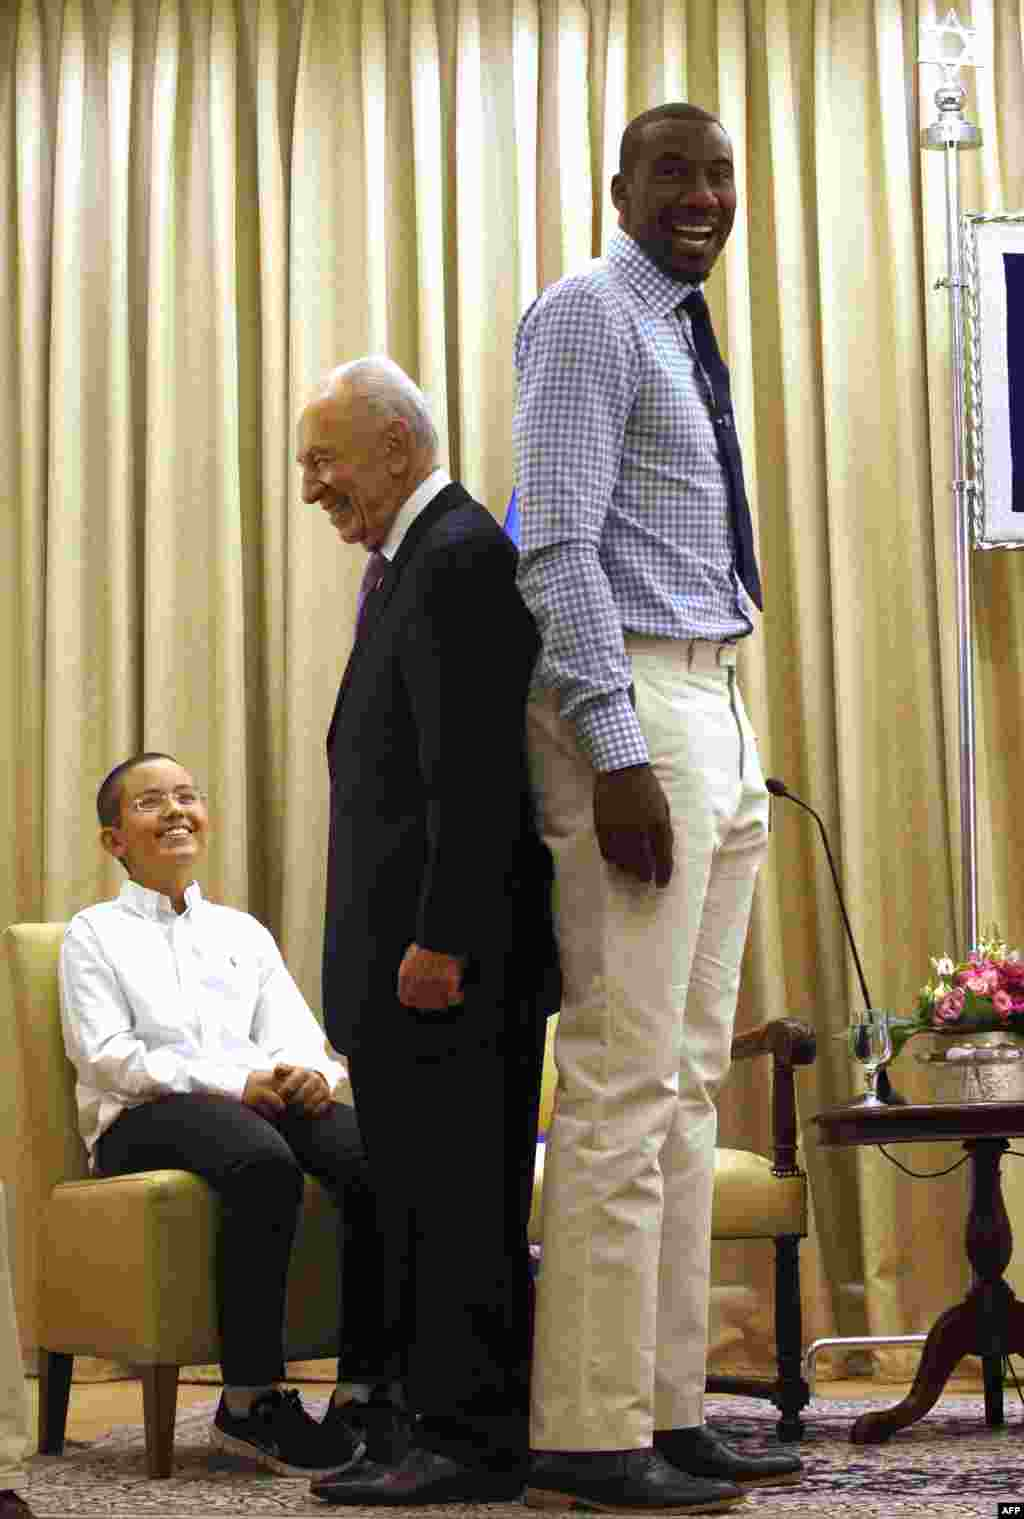 Israeli President Shimon Peres stands back to back with NBA basketball player Amar'e Stoudemire of the New York Knicks at the presidential residency in Jerusalem.